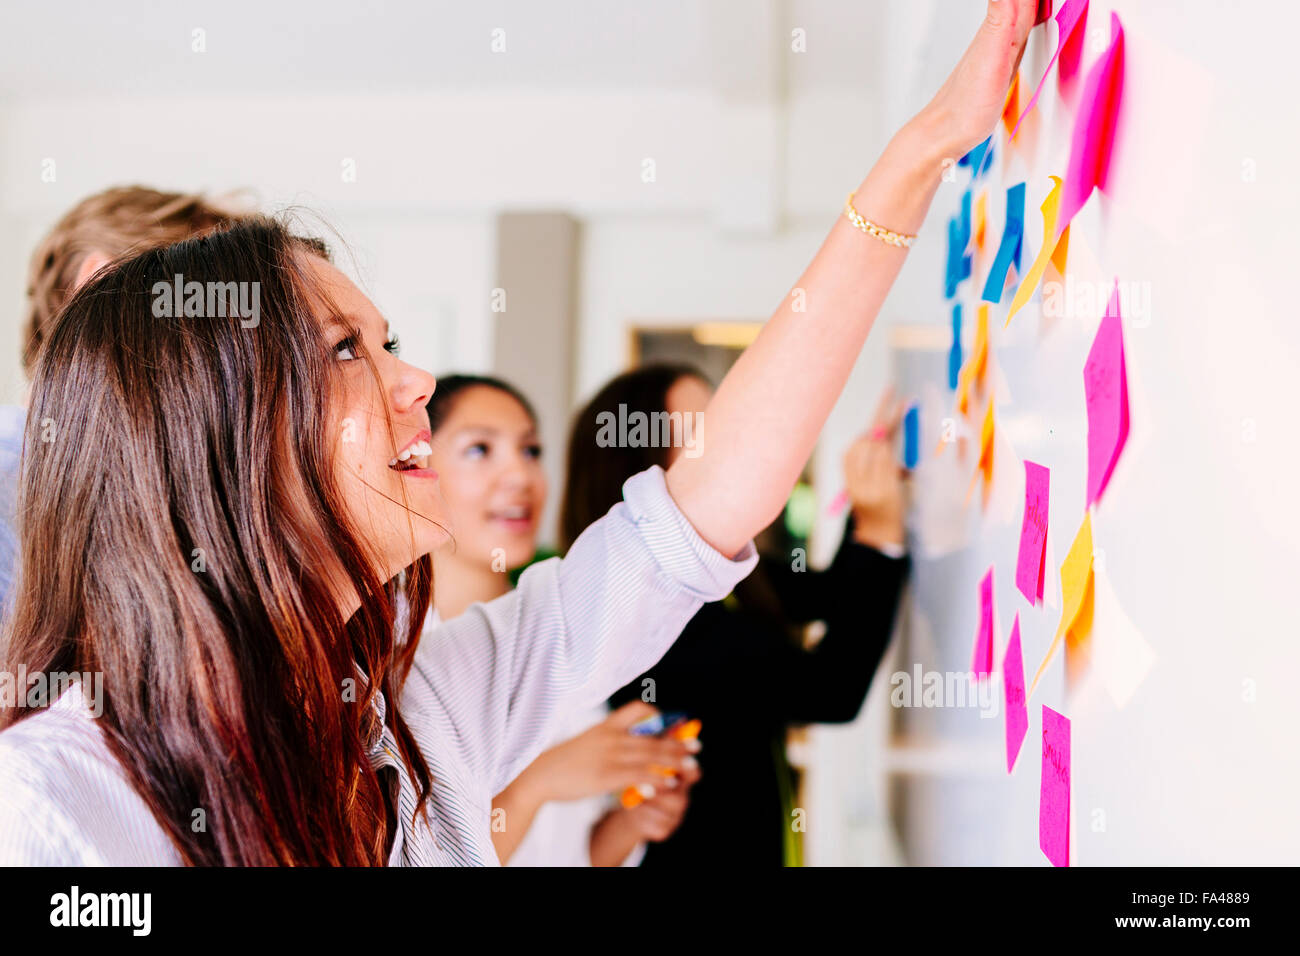 Business people fixing sticky notes at office - Stock Image